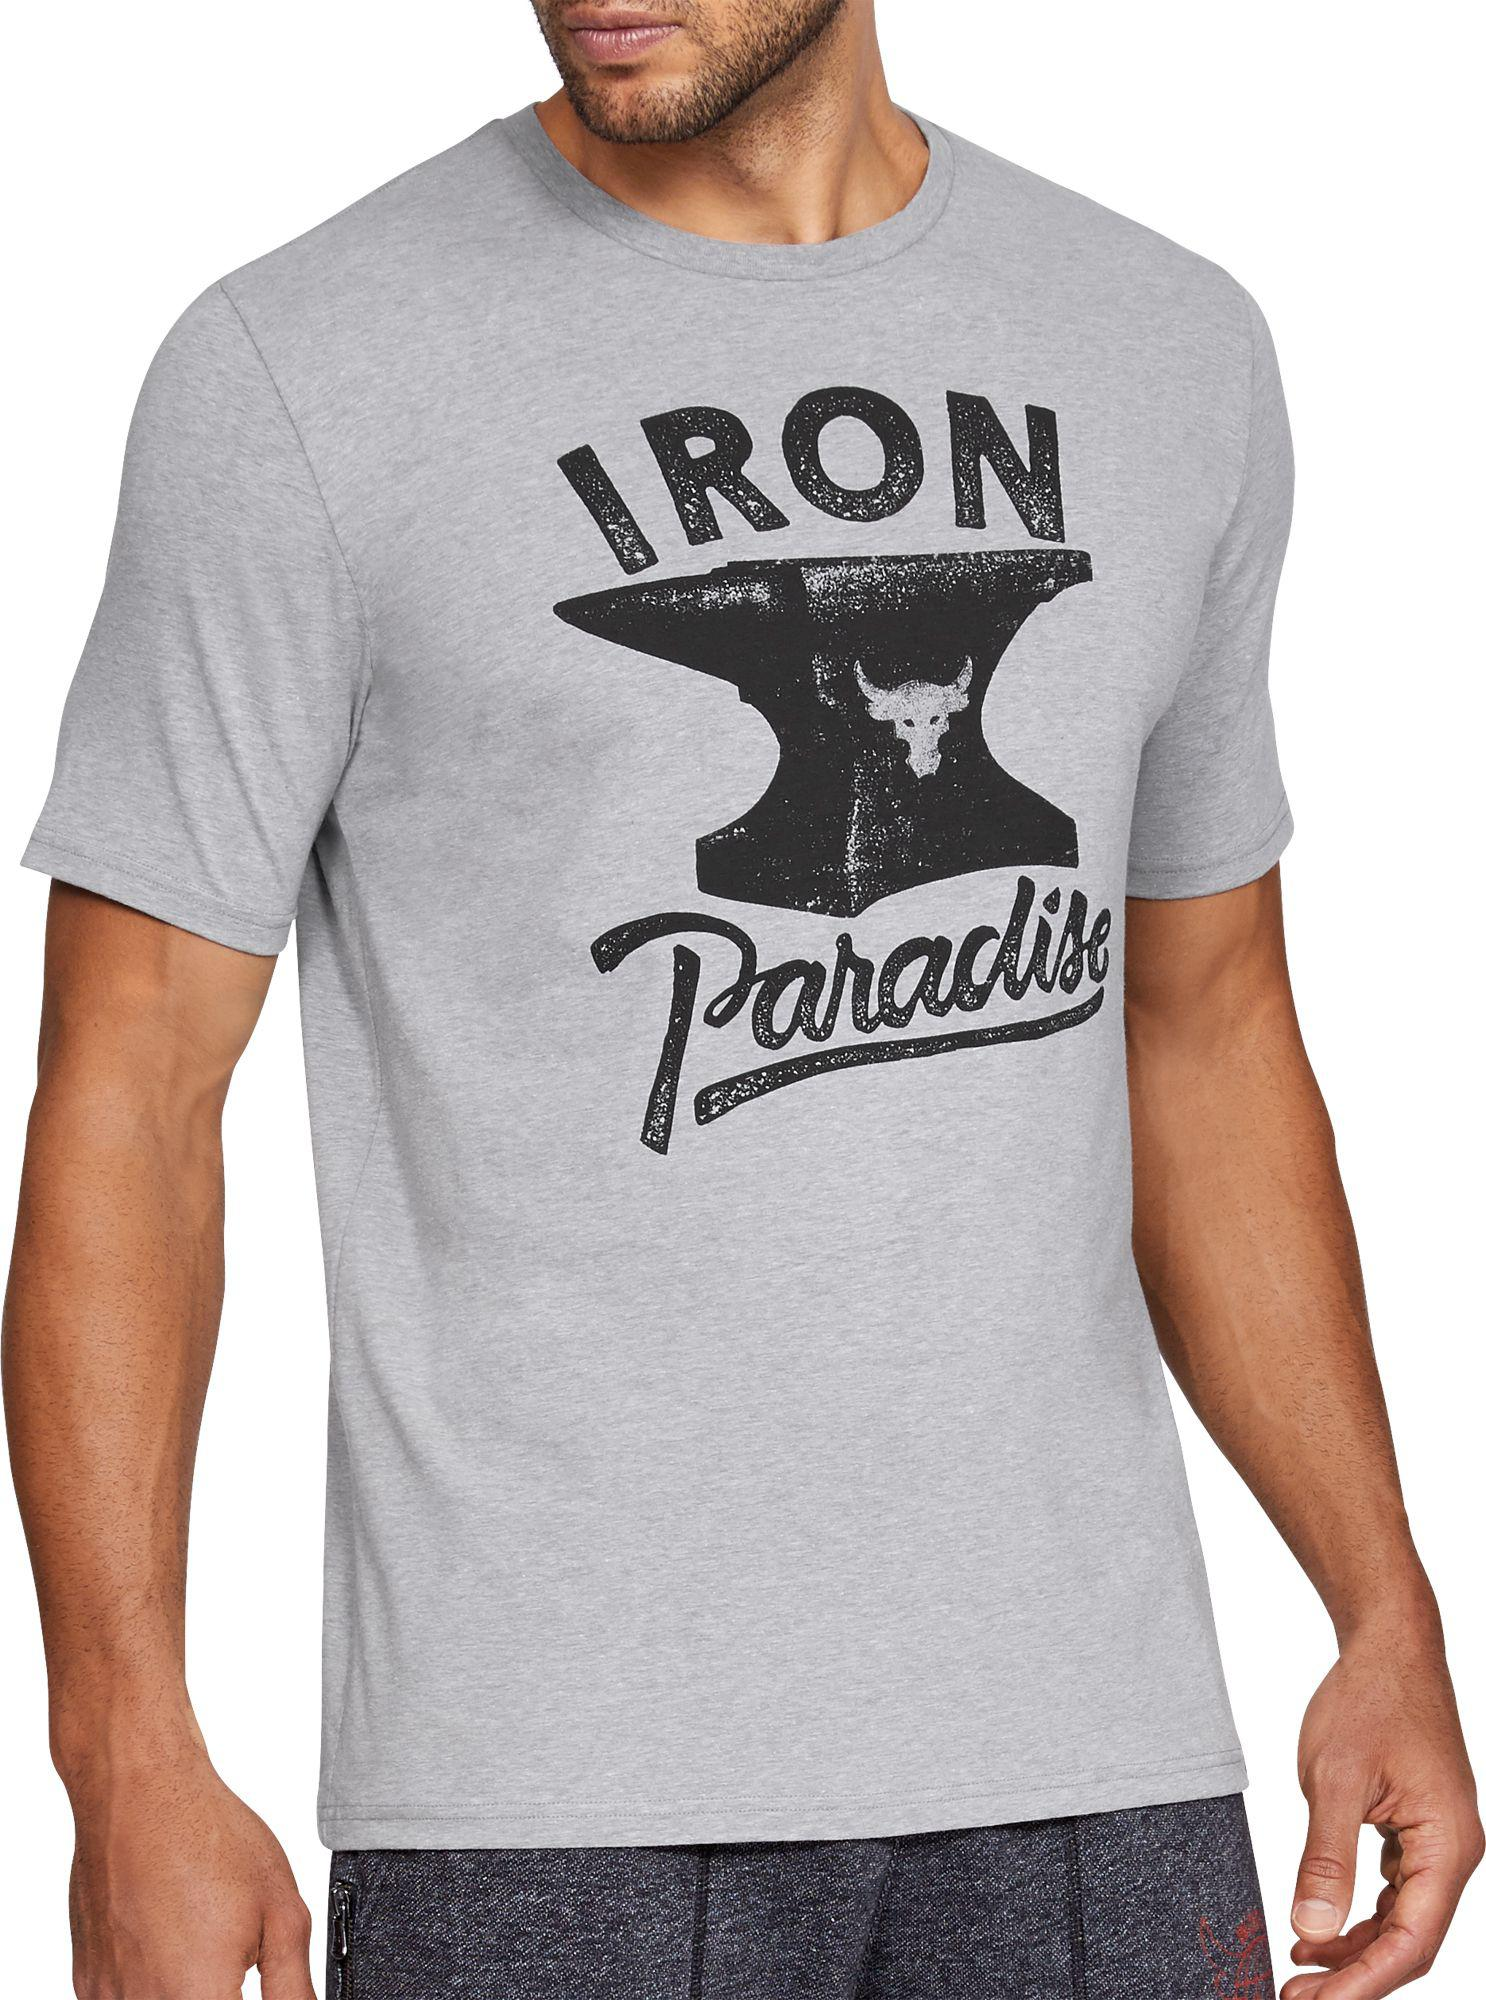 under-armour-Steel-Light-Heather-Project-Rock -Iron-Paradise-Graphic-T-shirt.jpeg 08fdd523ecf4